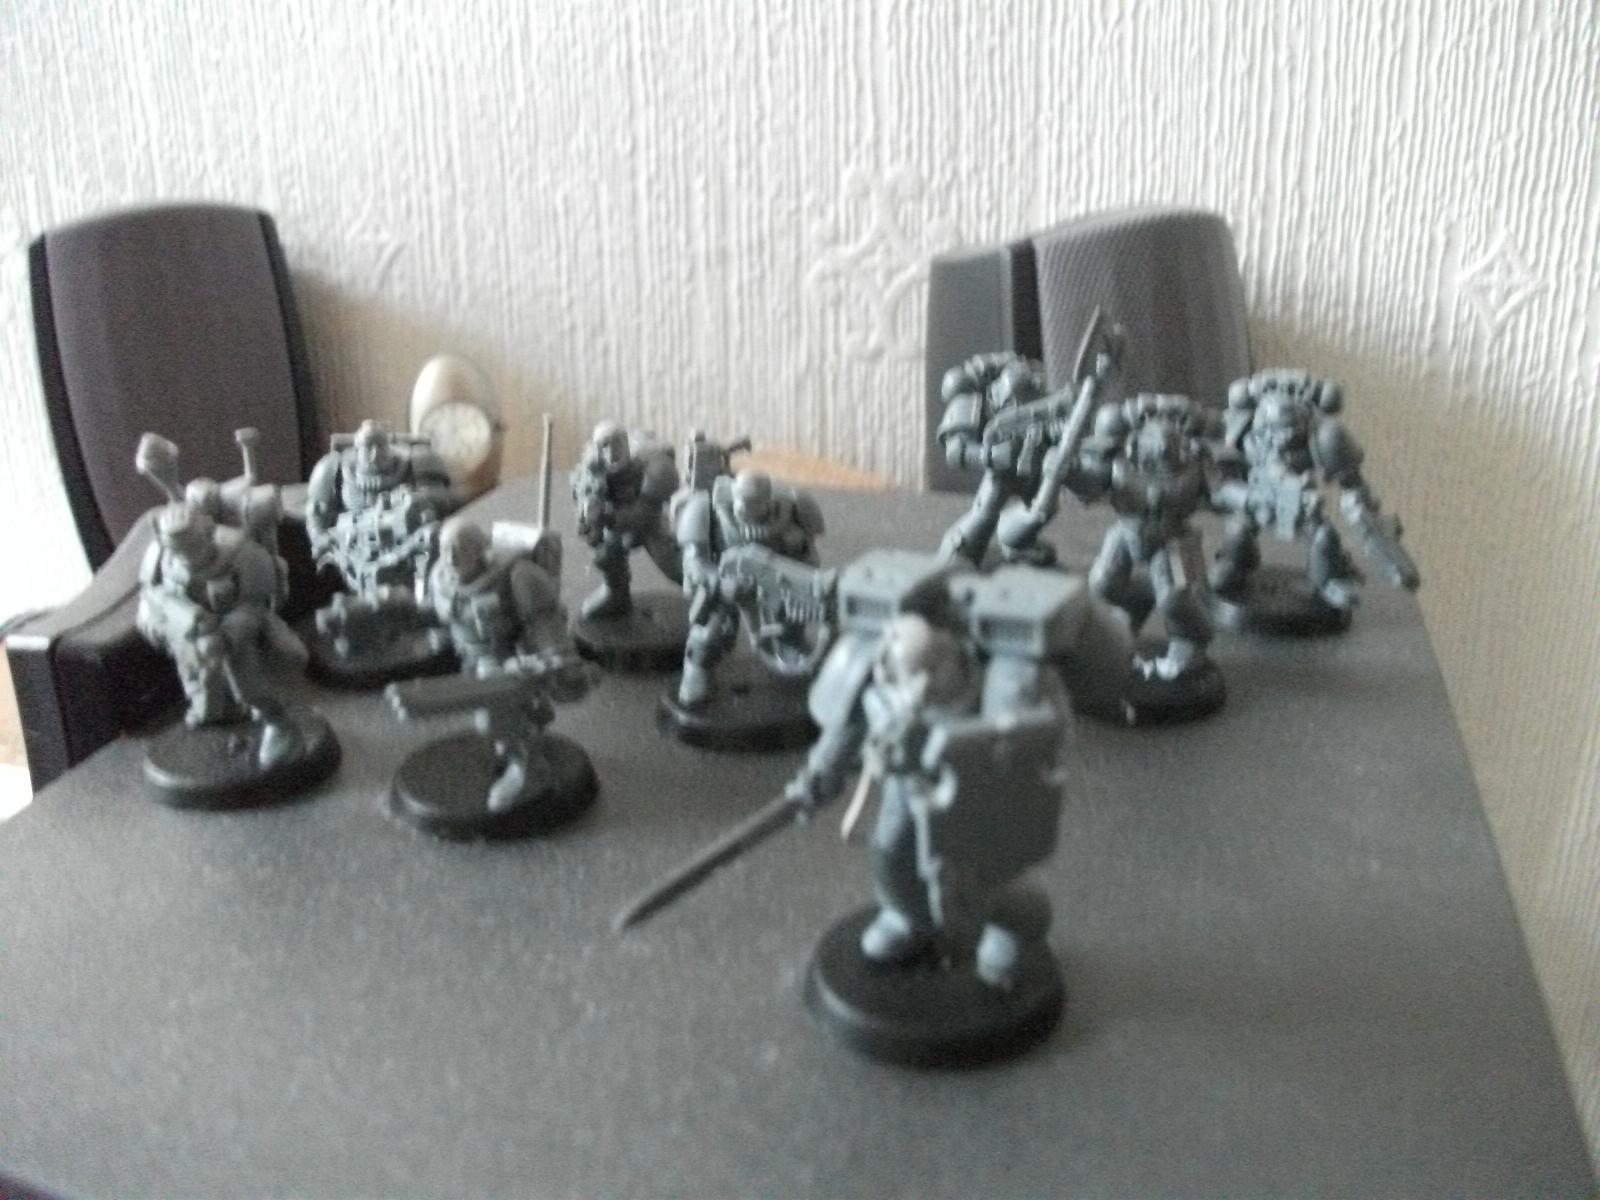 full army shot so far